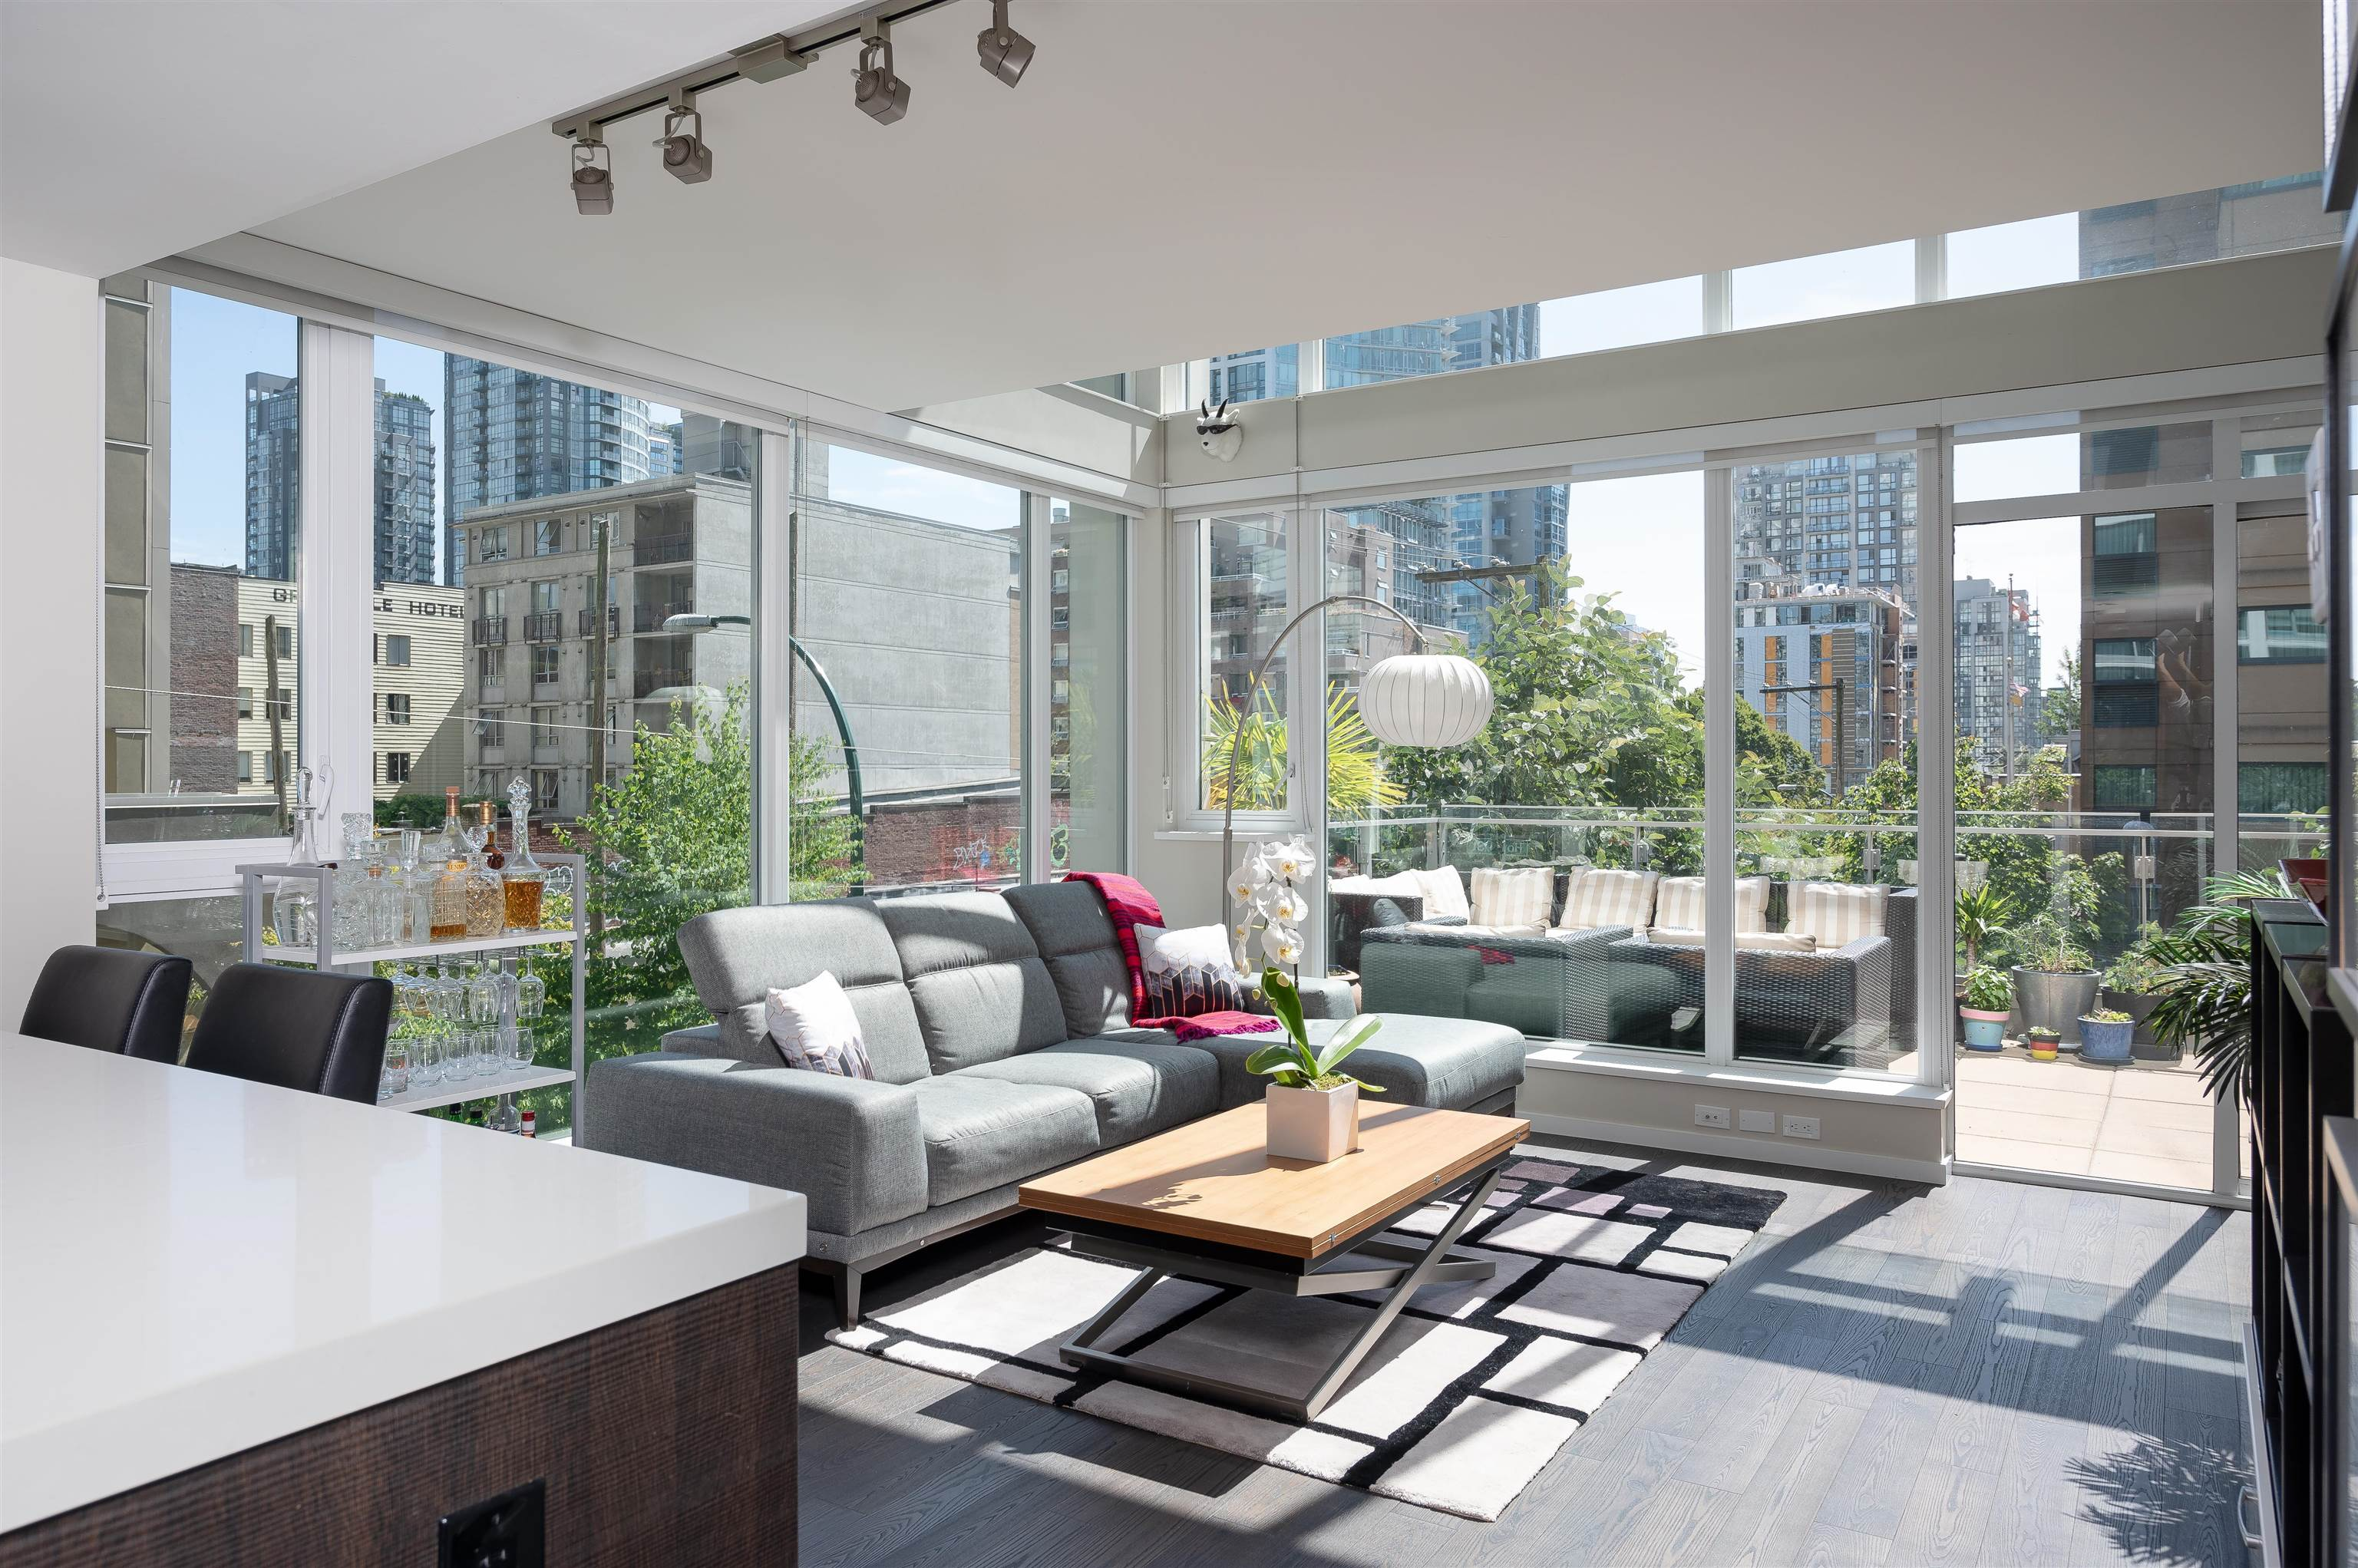 306 1351 CONTINENTAL STREET - Downtown VW Apartment/Condo for sale, 2 Bedrooms (R2617899) - #2